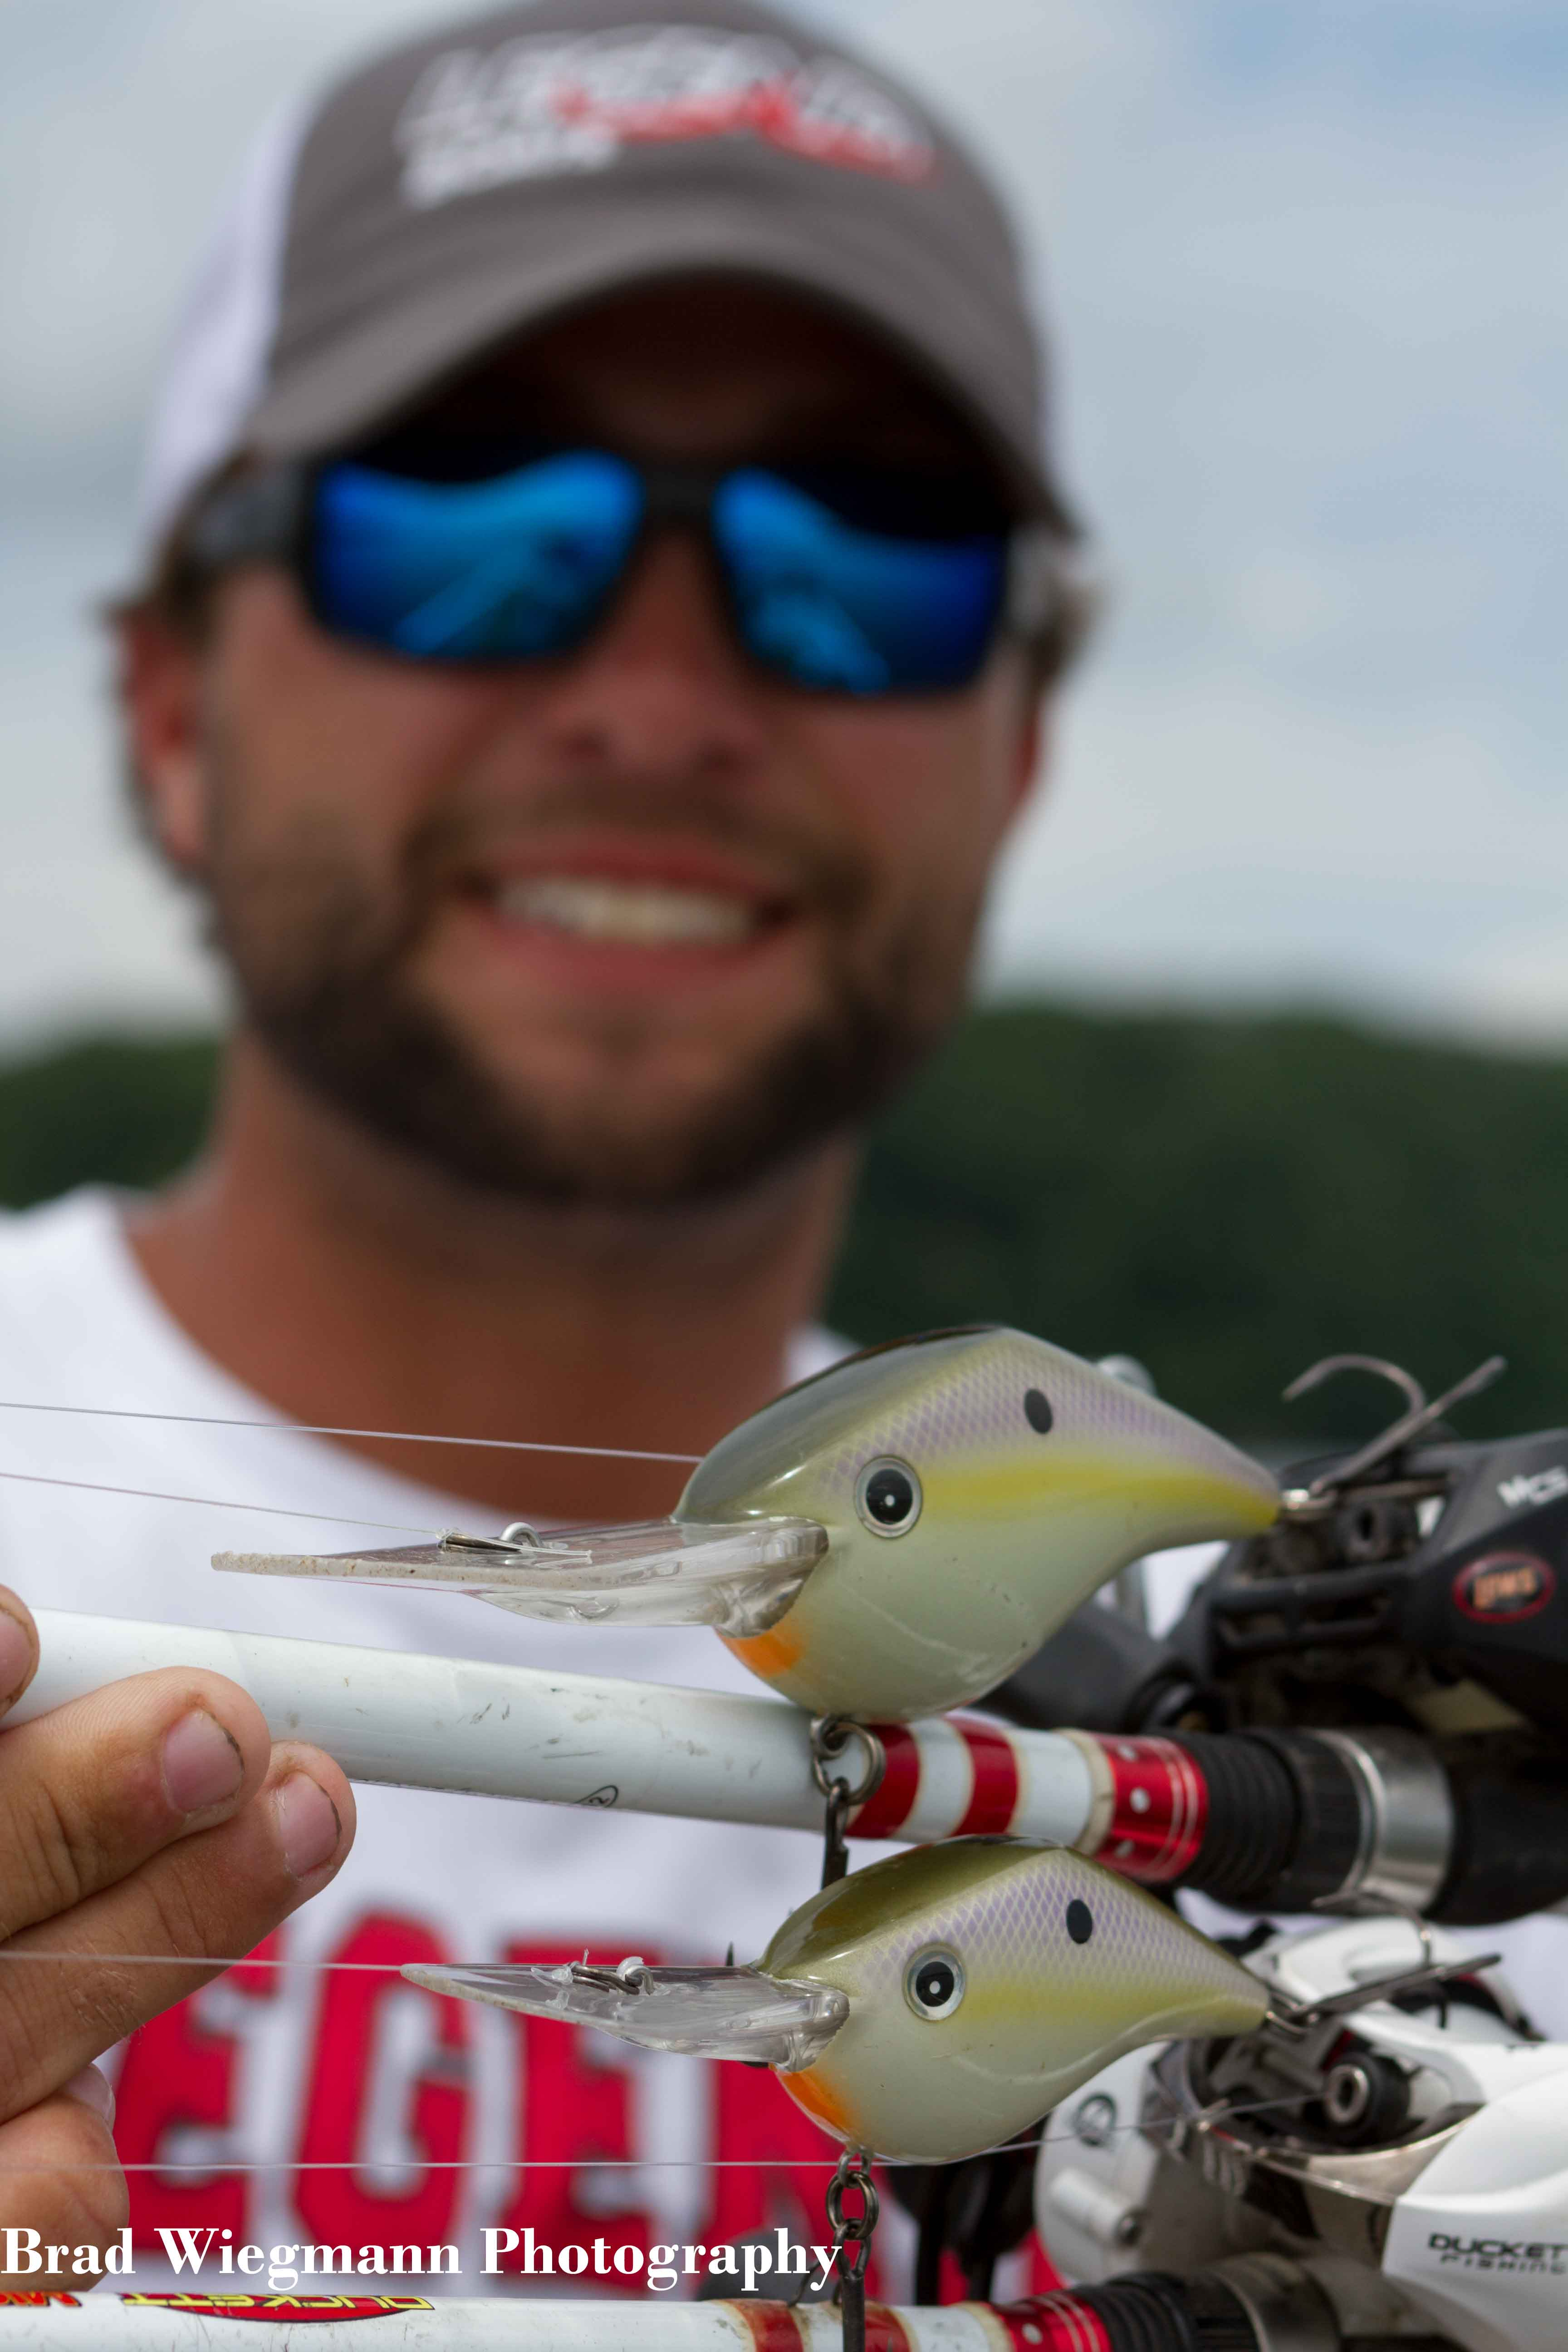 bwp-two-z-boss-crankbaits-with-Cameron